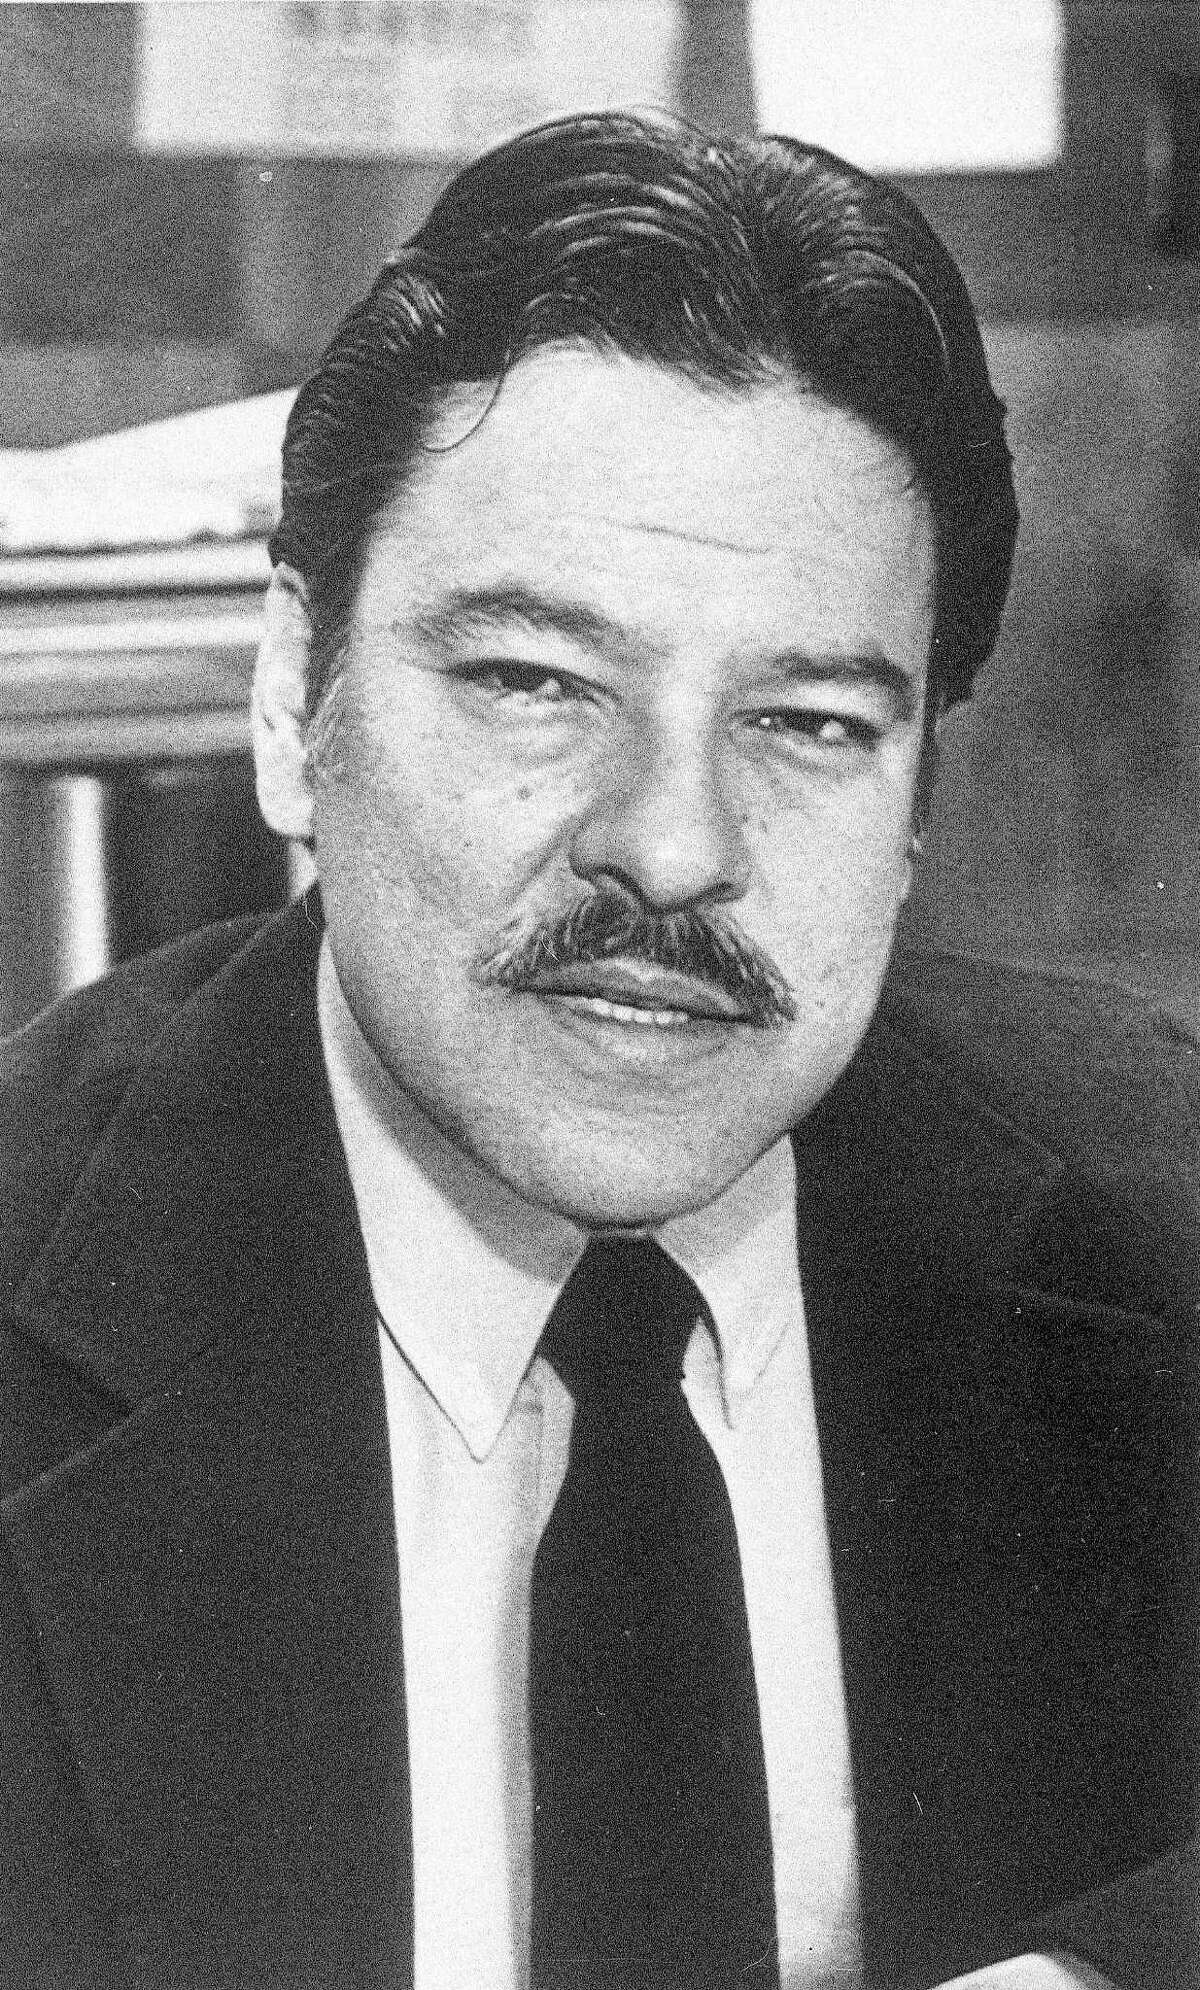 """FILE - In this 1984, file photo shows William C. """"Willie"""" Velasquez at an unknown location. A new VOCES/PBS documentary on Velasquez dives into the life of the late Latino voting rights advocate just as the nation's largest minority group is set to be a major player in the upcoming presidential election. Director Hector Galan says Velasquez was a key figure in developing the Latino voting bloc. Â?""""Willie Velasquez: Your Vote Is Your VoiceÂ?"""" begins airing on PBS stations Monday, Oct. 3, 2016. (AP Photo, File)"""